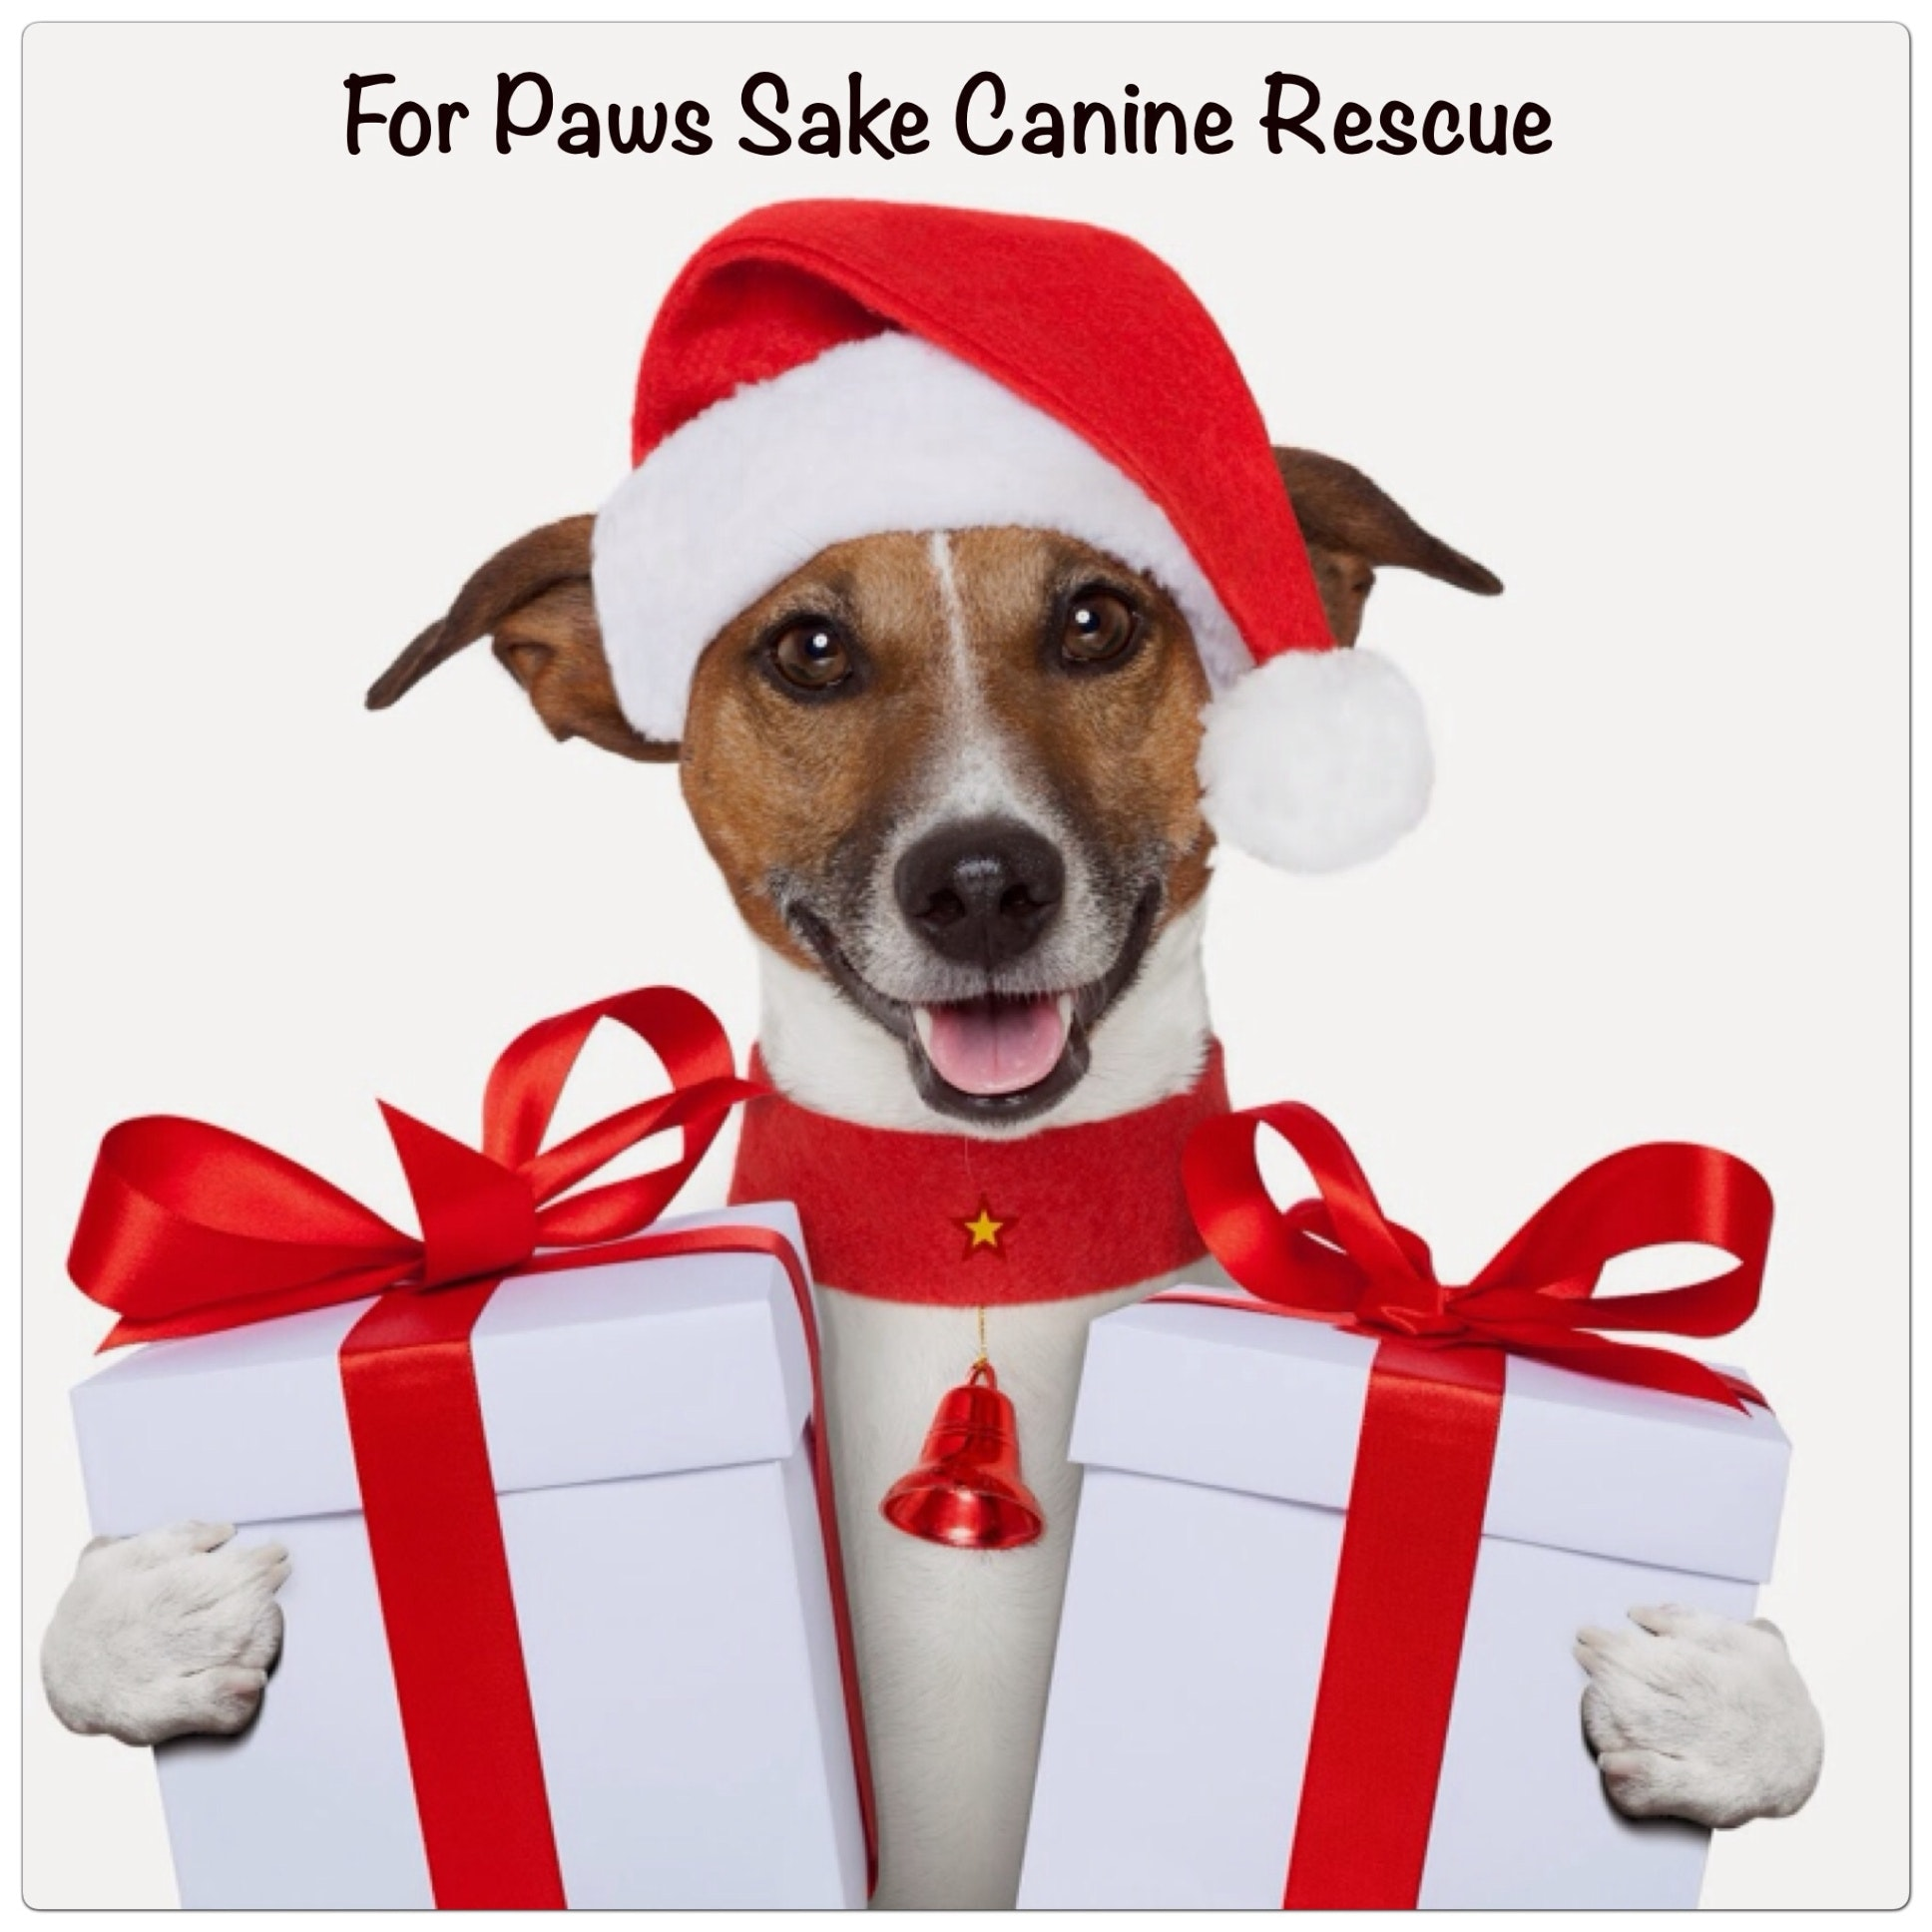 Support For Paws Sake Canine Rescue